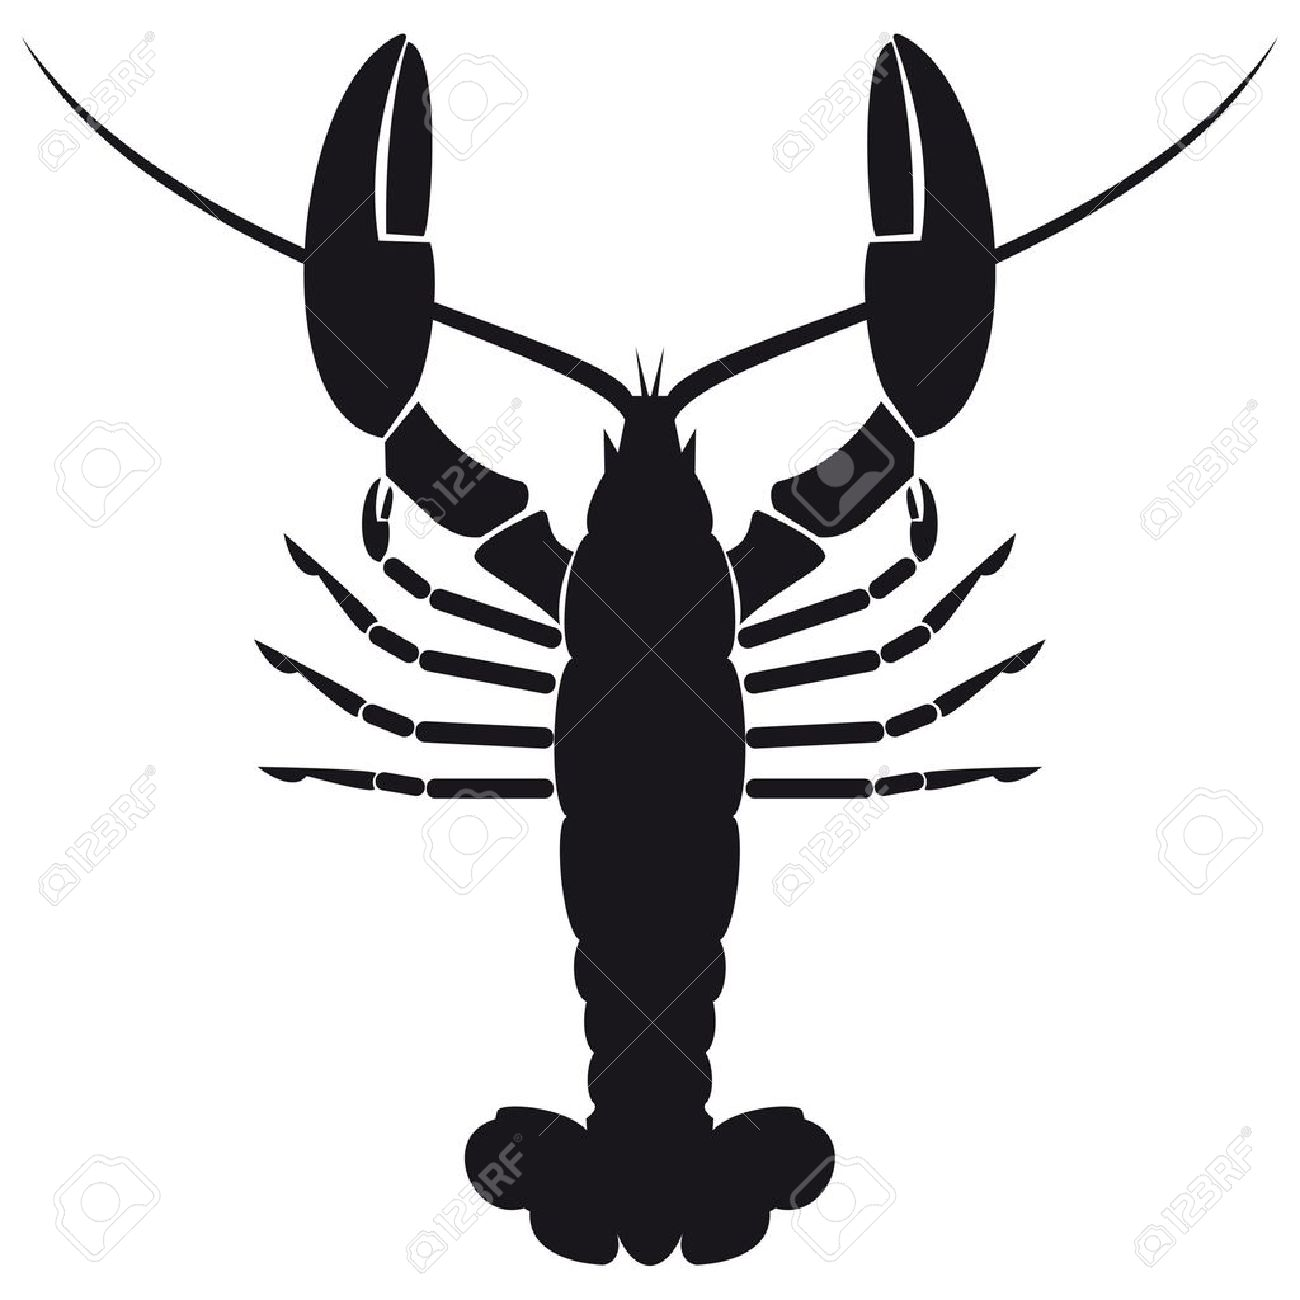 Crawfish Silhouette Cliparts